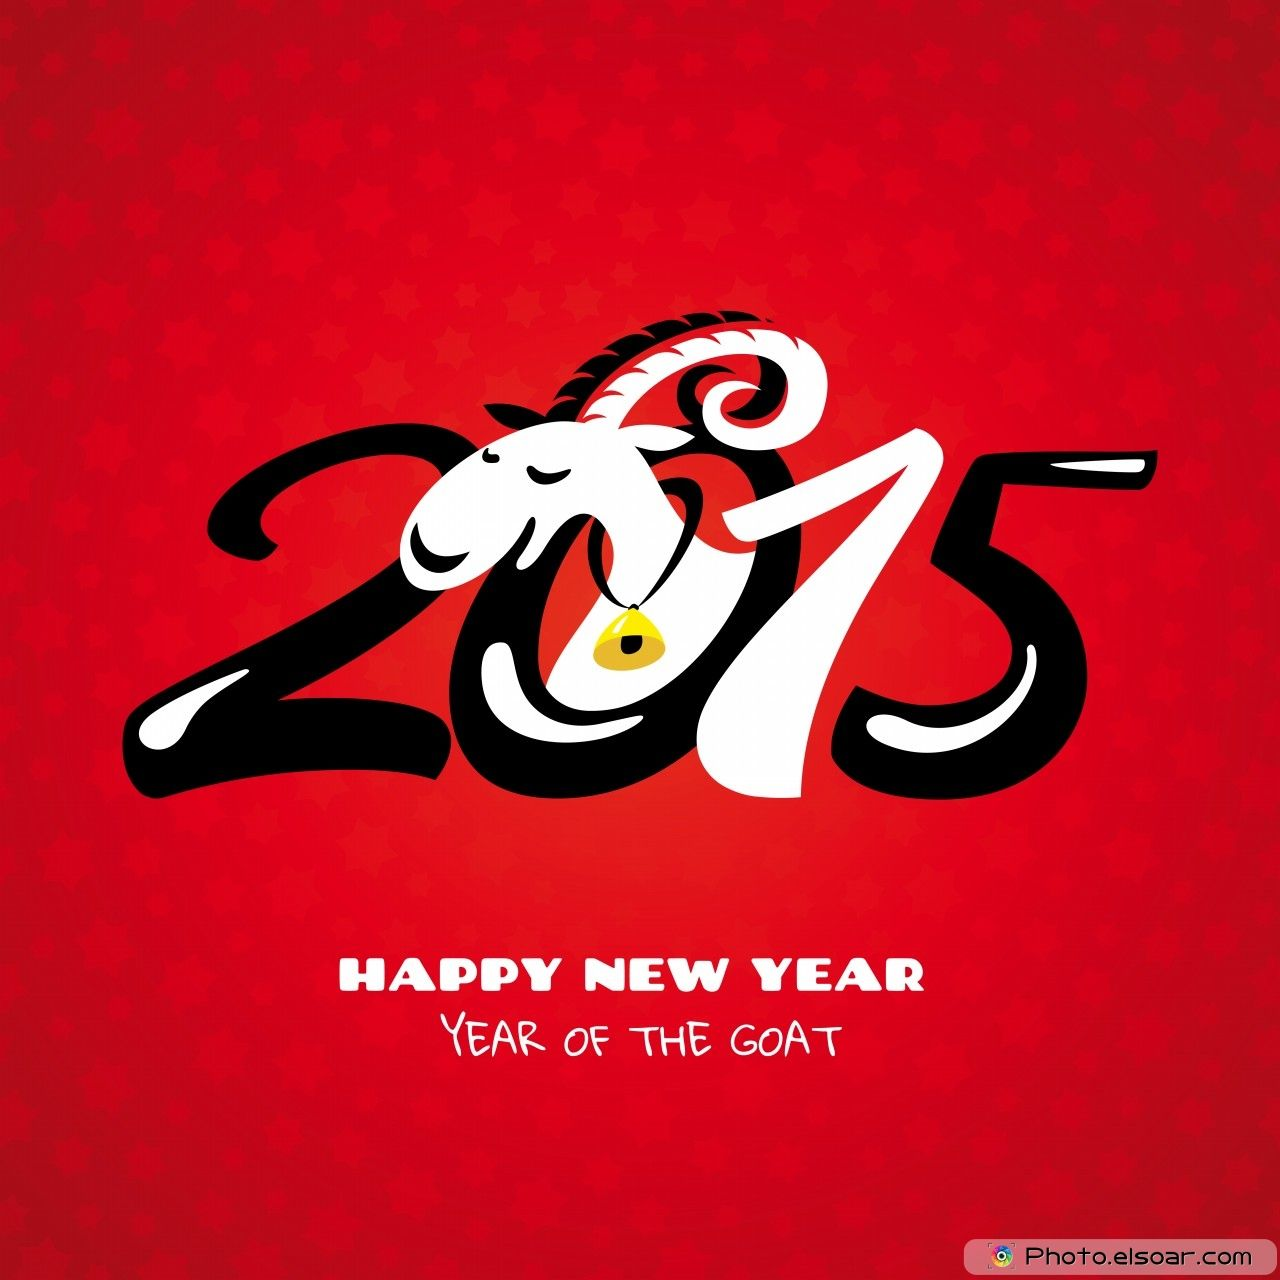 Creative Chinese New Year Greeting Card Ideas 2015 With Red Chinese